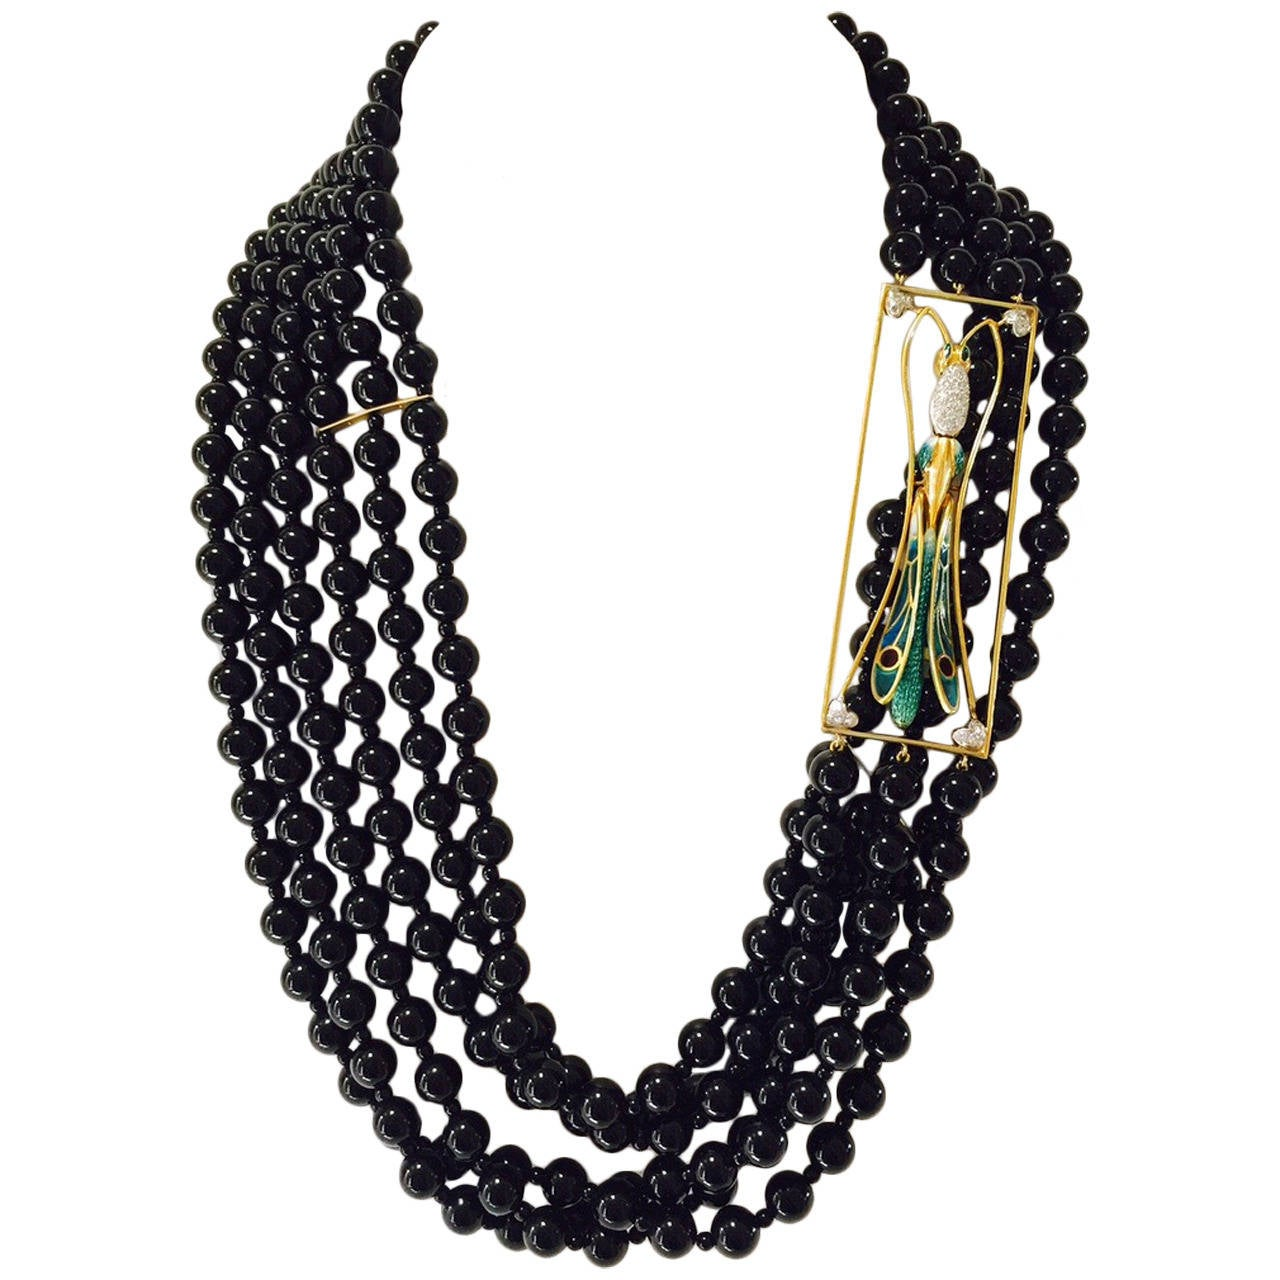 Plique a Jour Dragonfly Onyx Beads Necklace For Sale